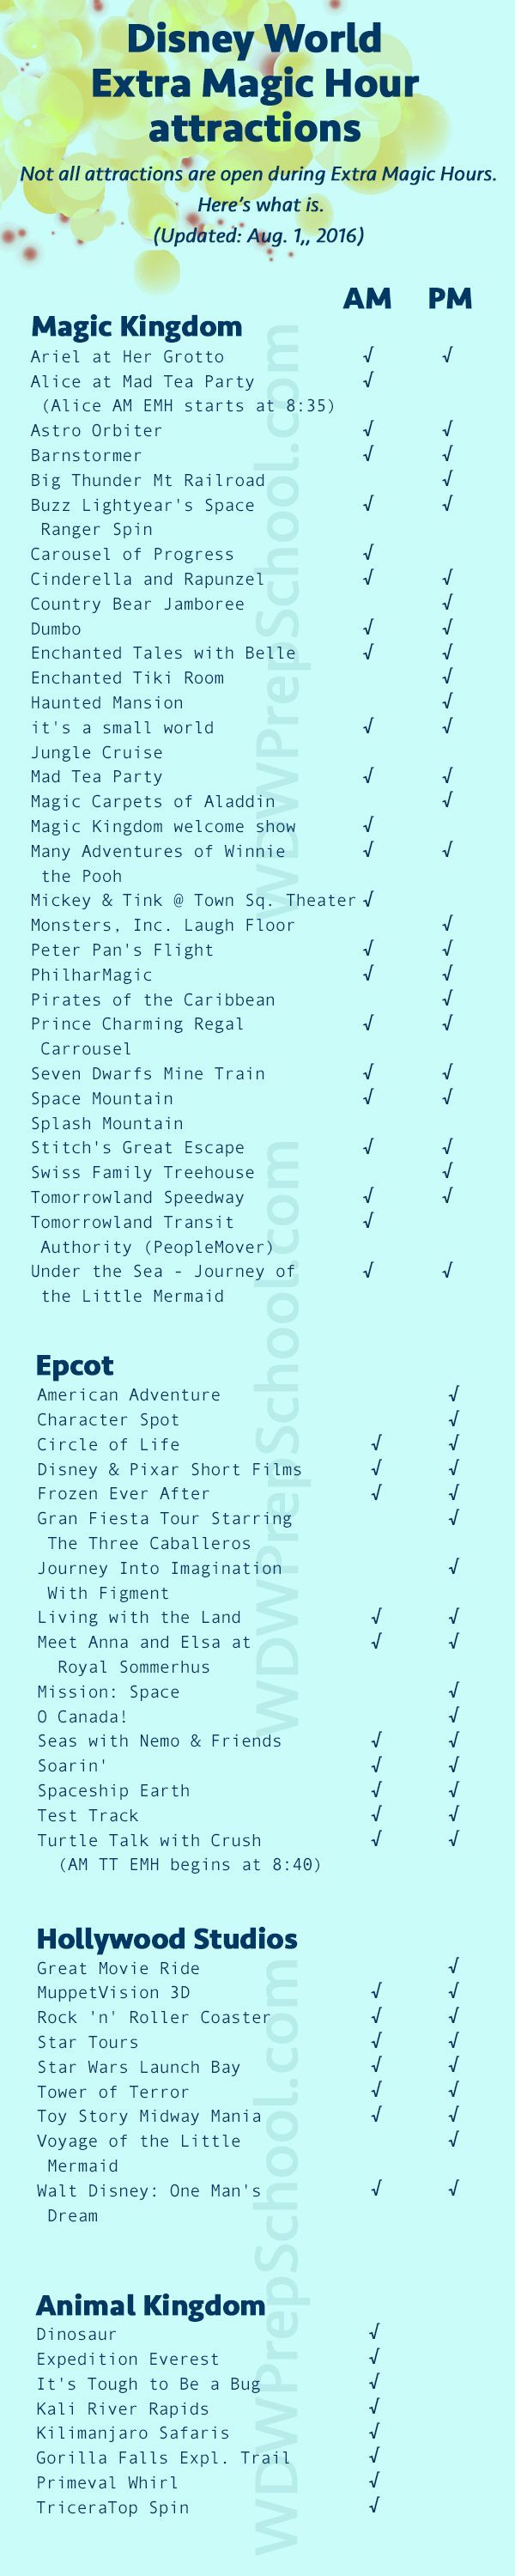 Not all attractions are open during Extra Magic Hours at Walt Disney World. Here's the current list.